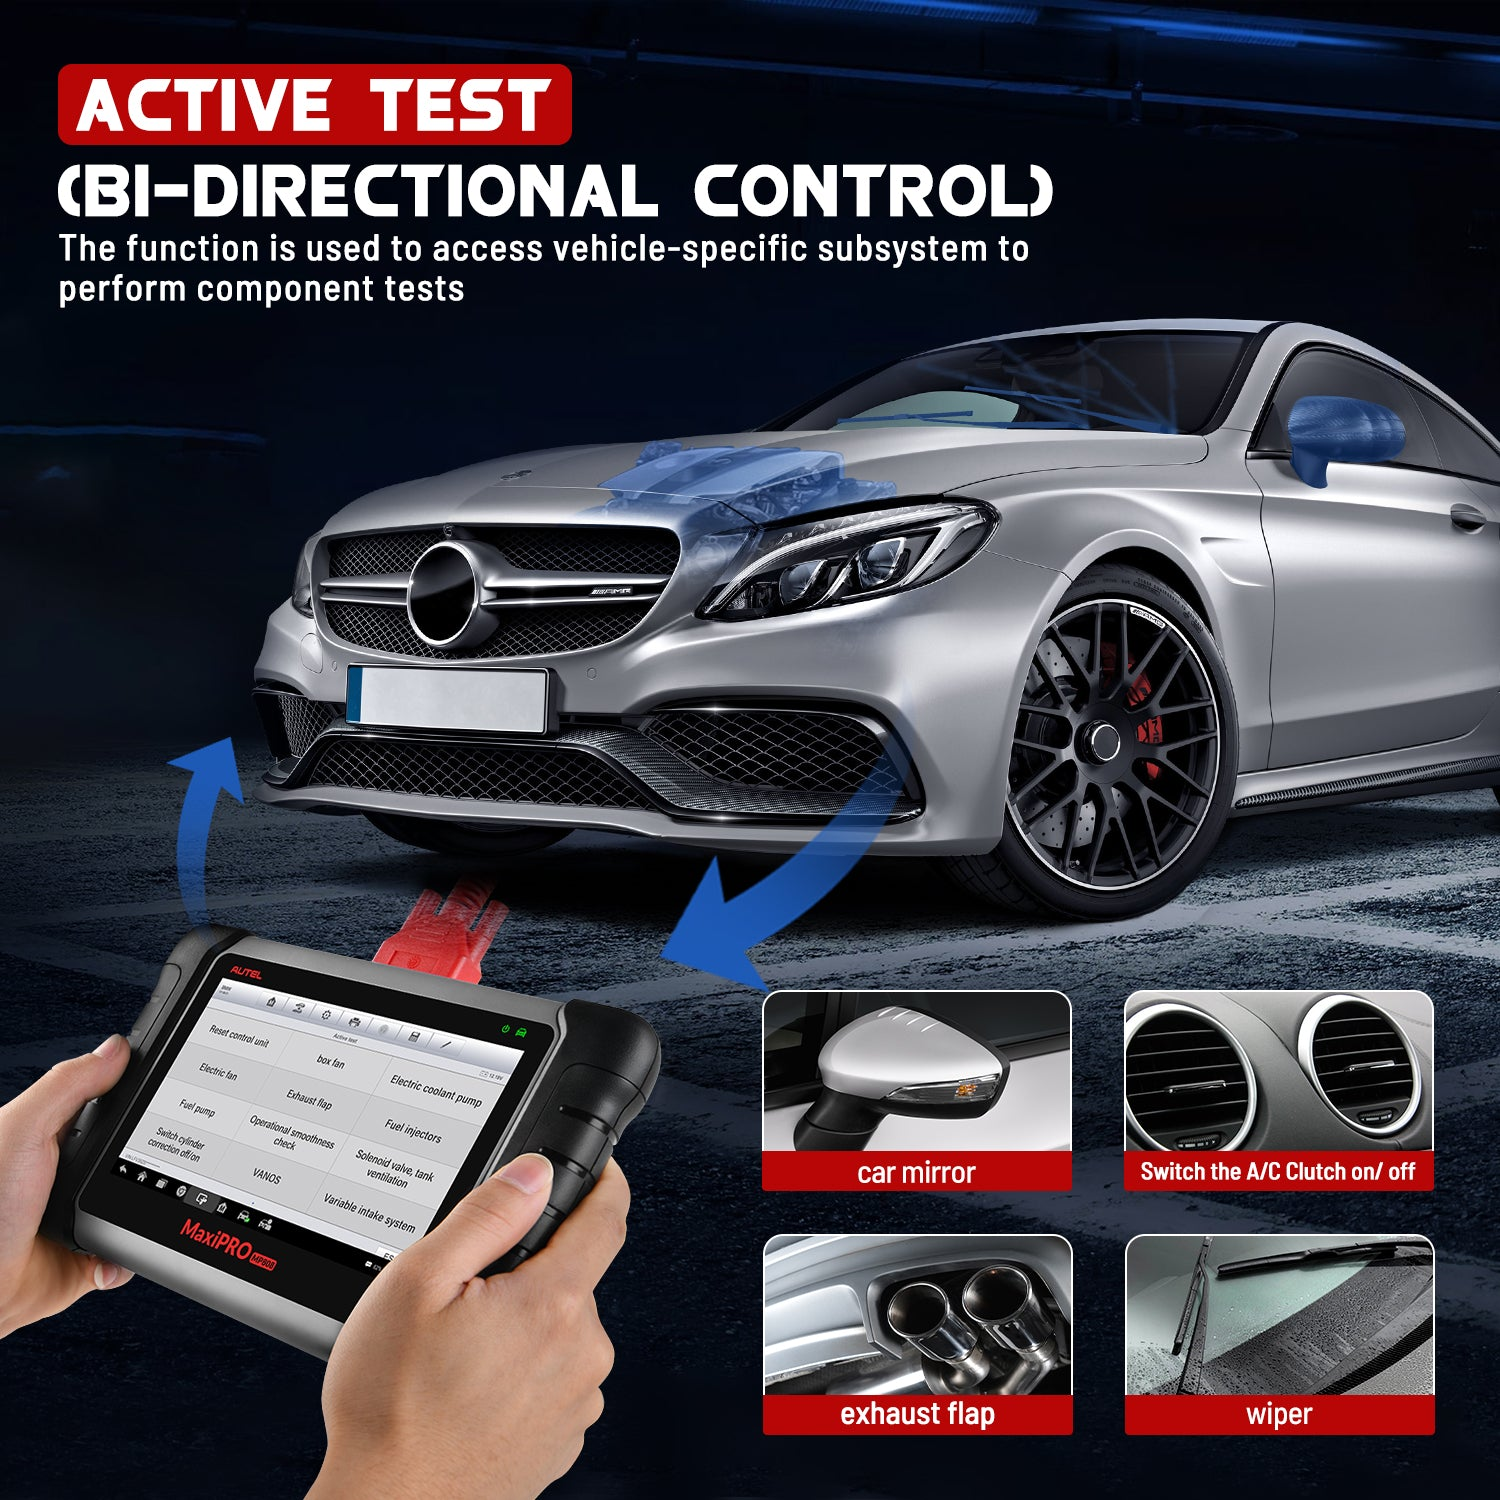 Autel MaxiPro MP808K OE-level All System OBD2 Diagnostics Tool Supports Bi-Directional Control/Active Test